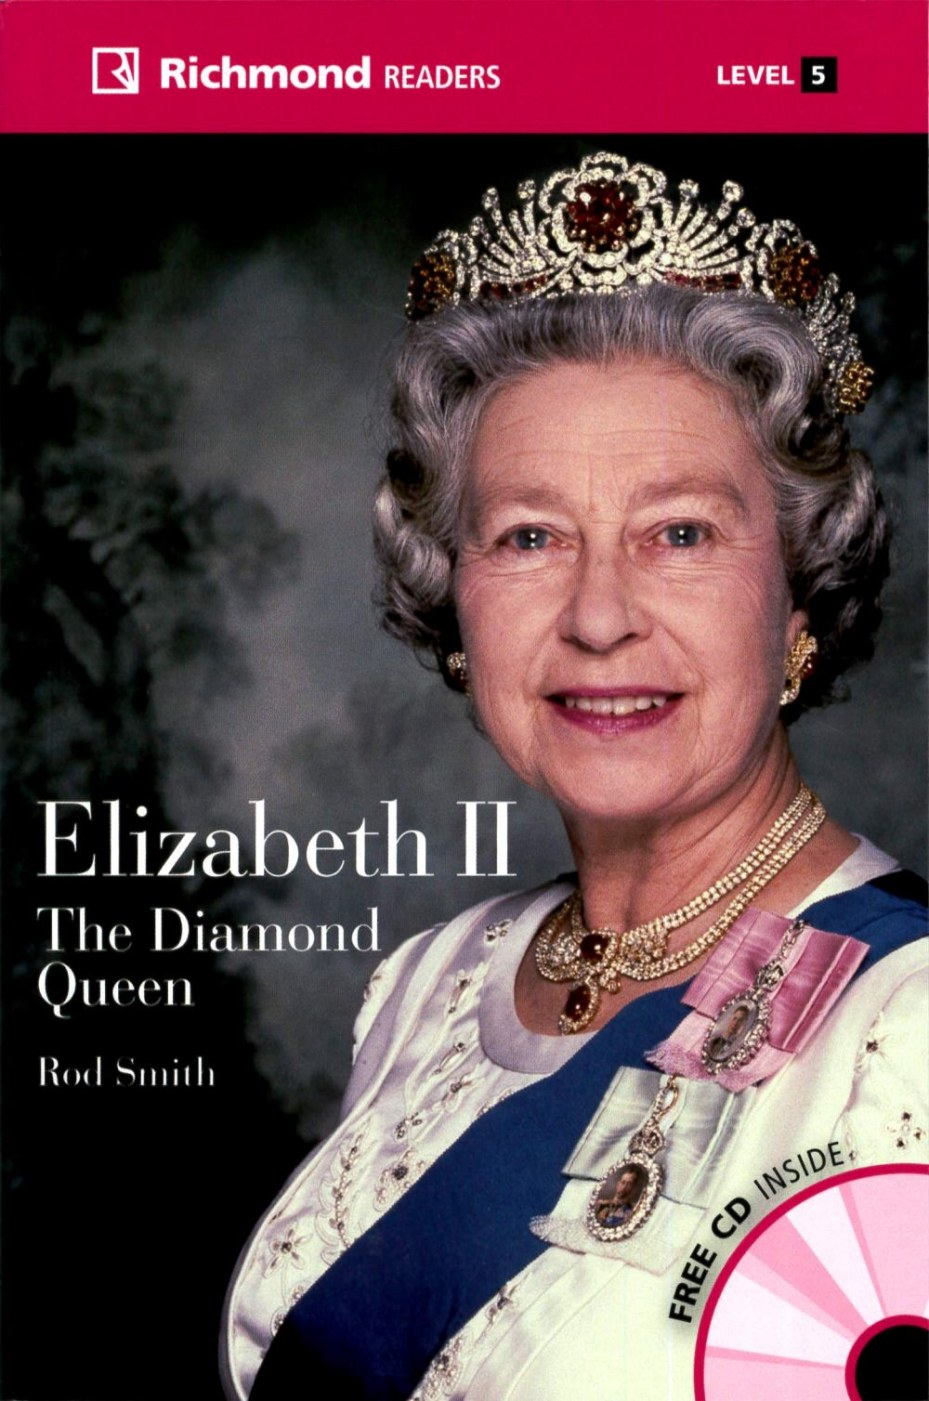 Richmond Readers  5  Elizabeth II The Diamond